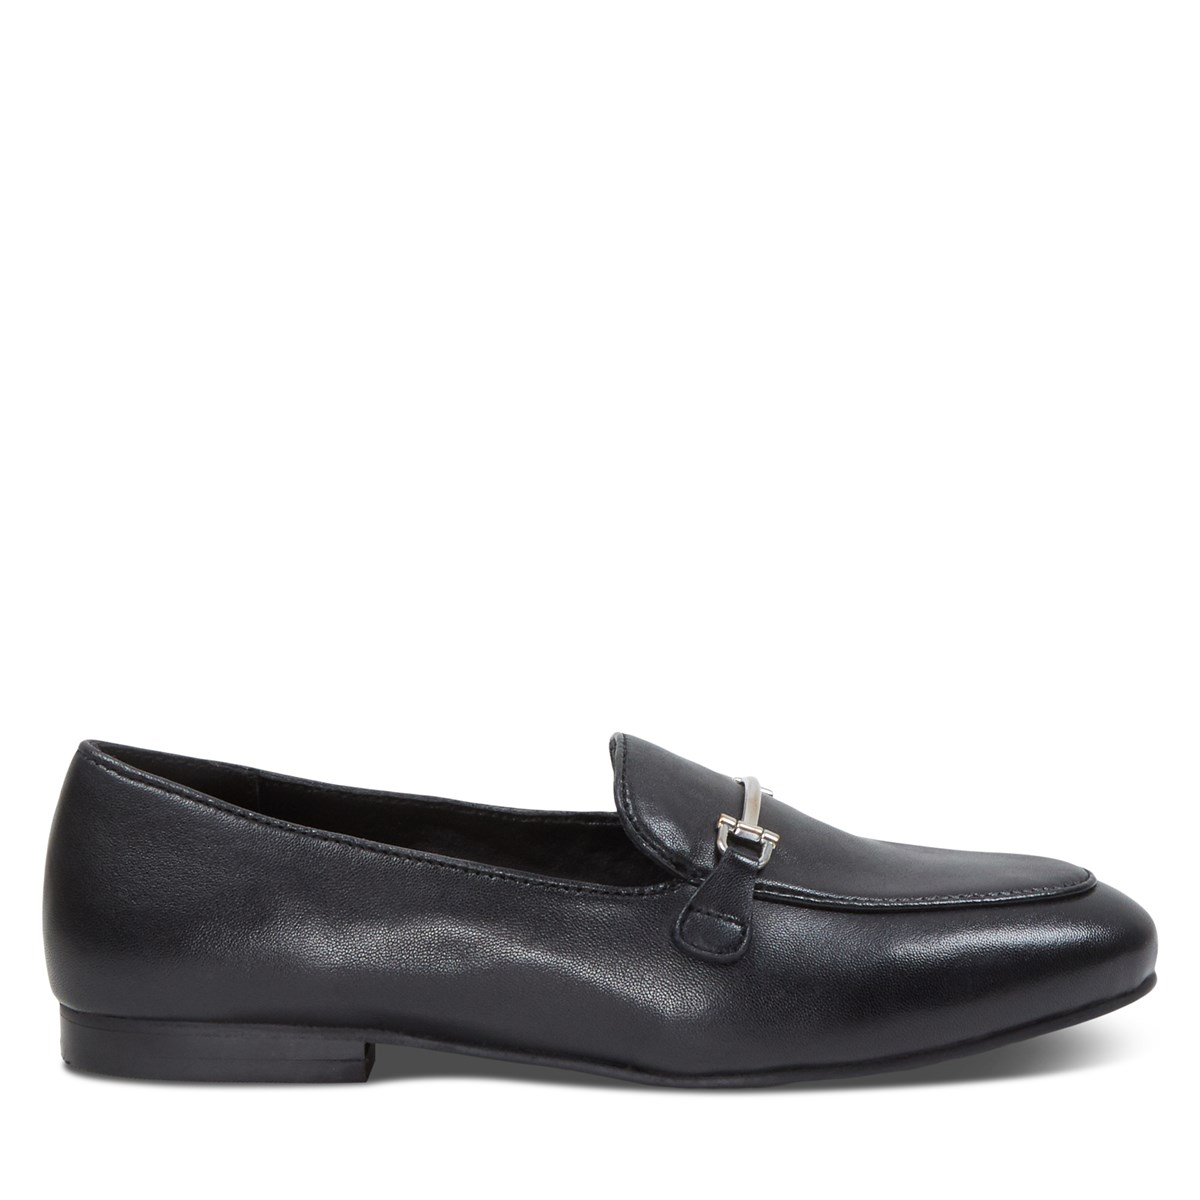 Women's Sabrina Mules in Black